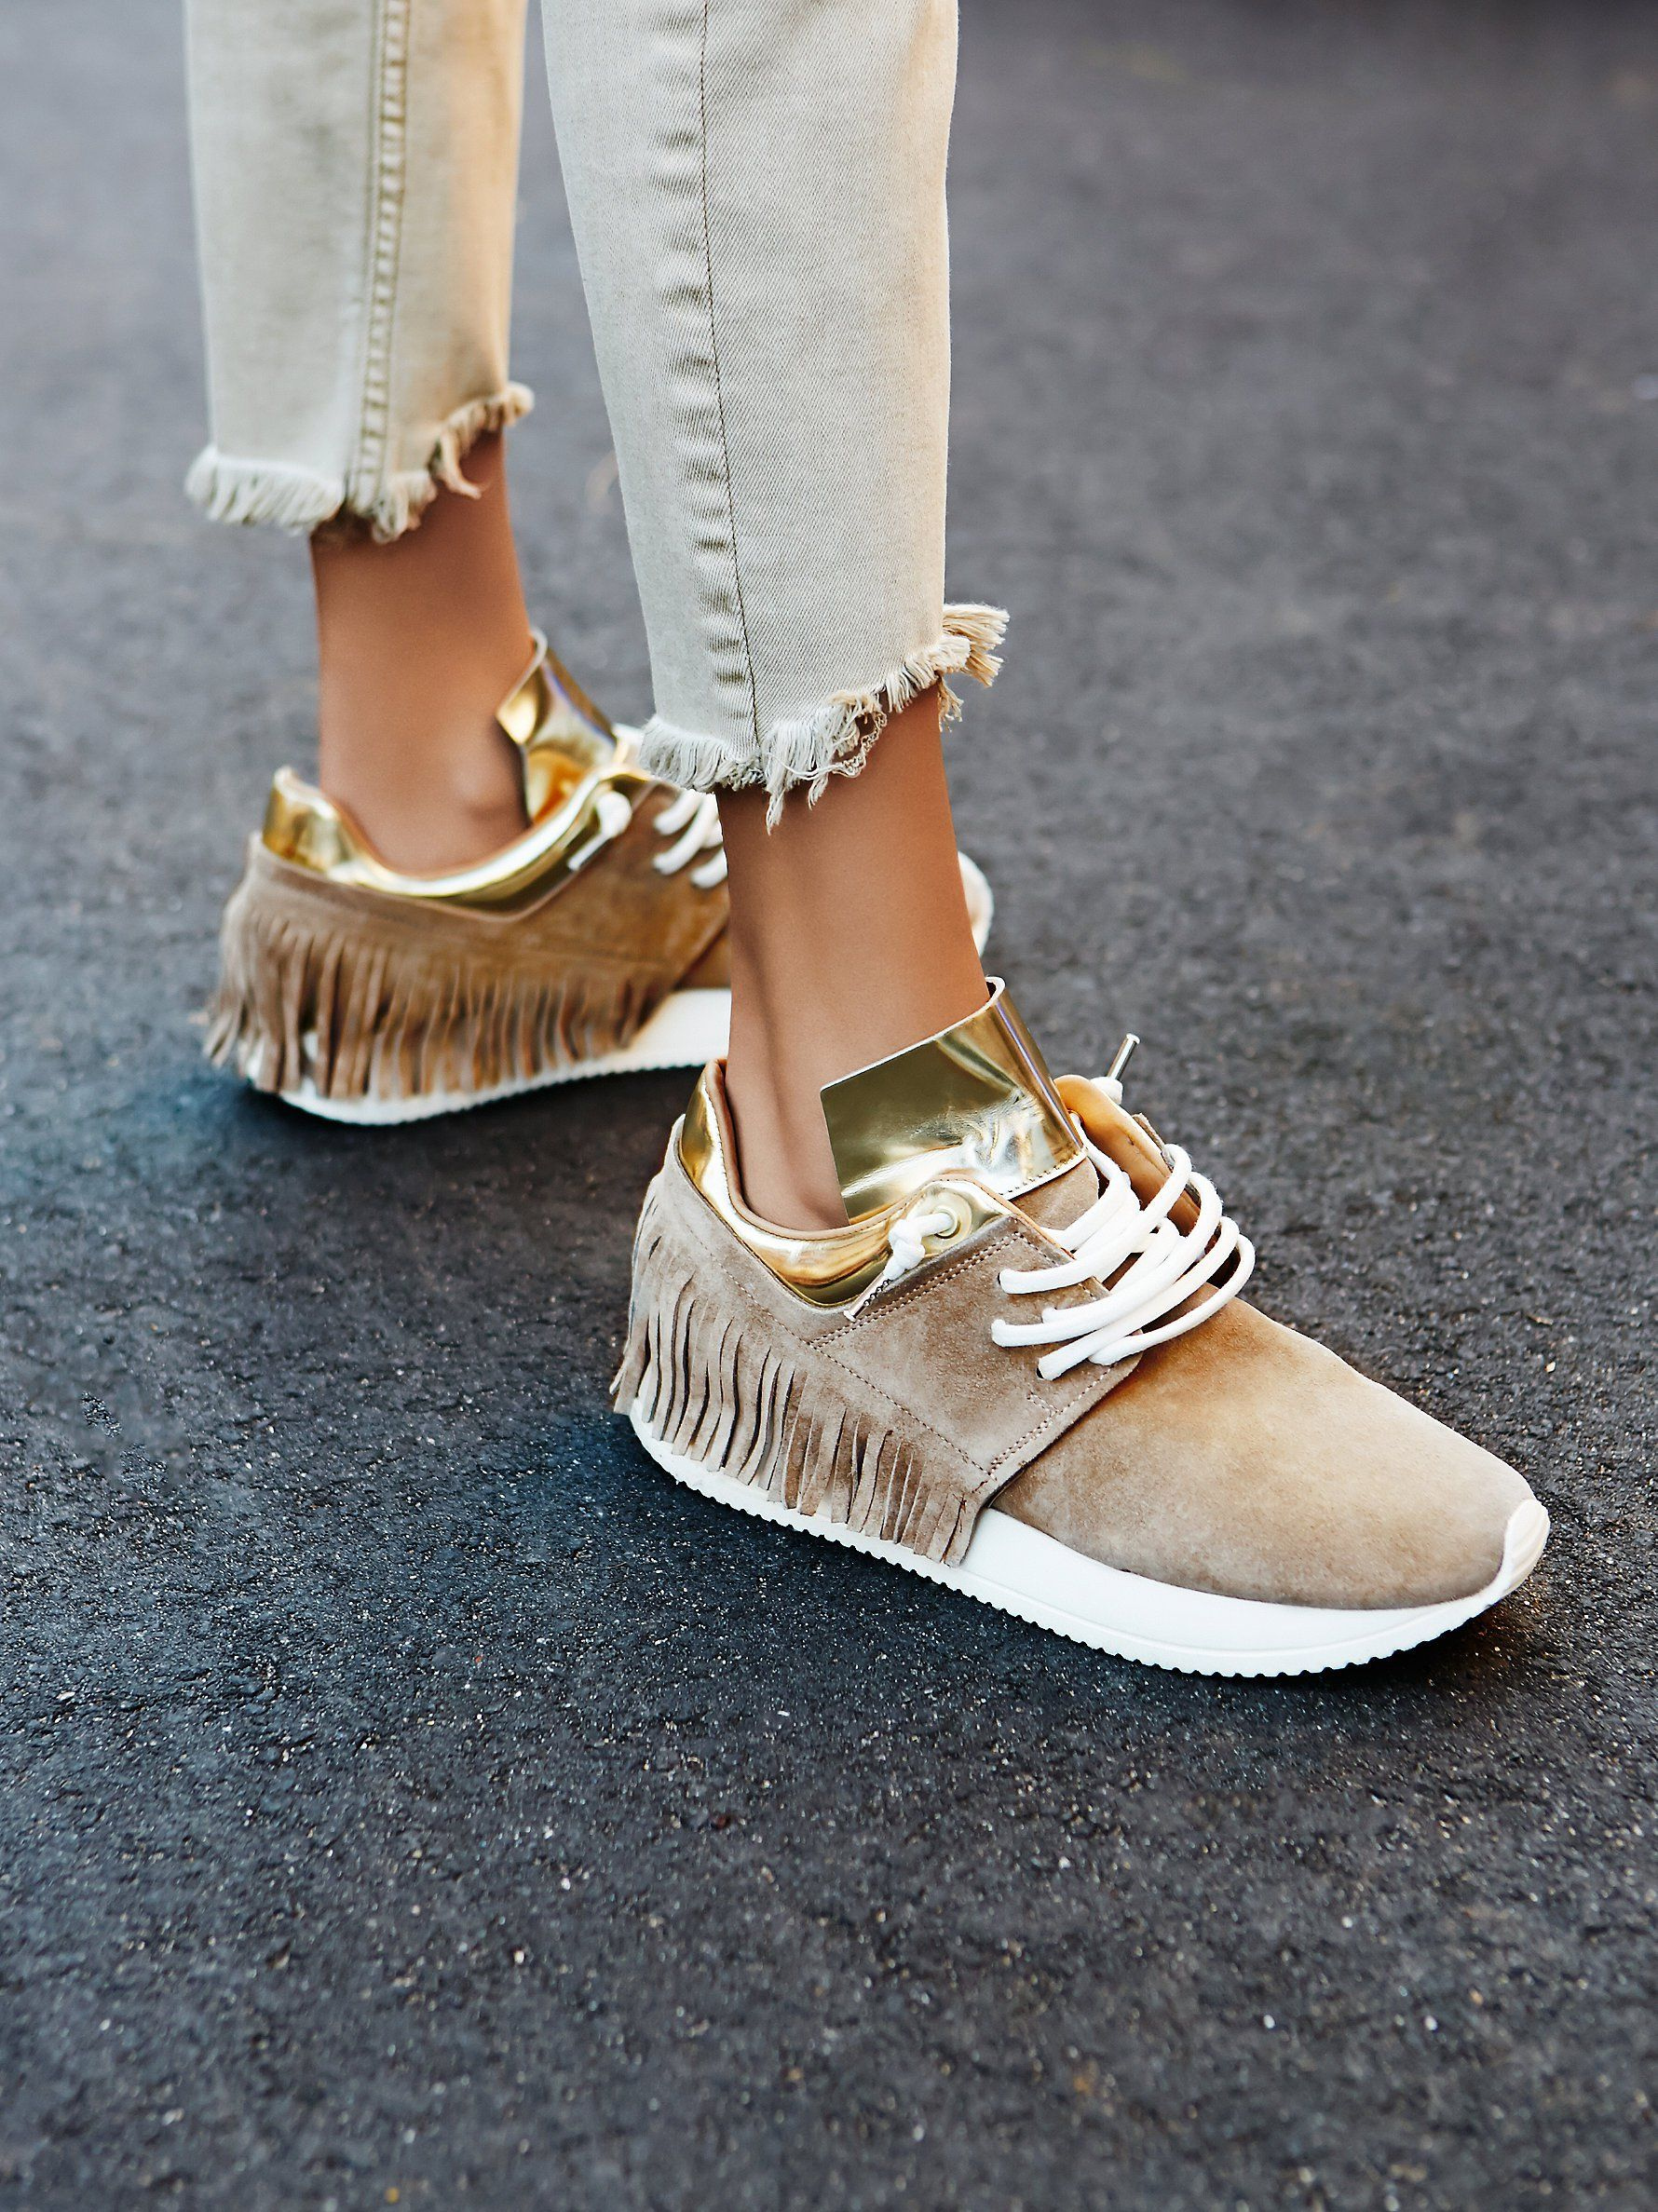 Fringe sneakers, Me too shoes